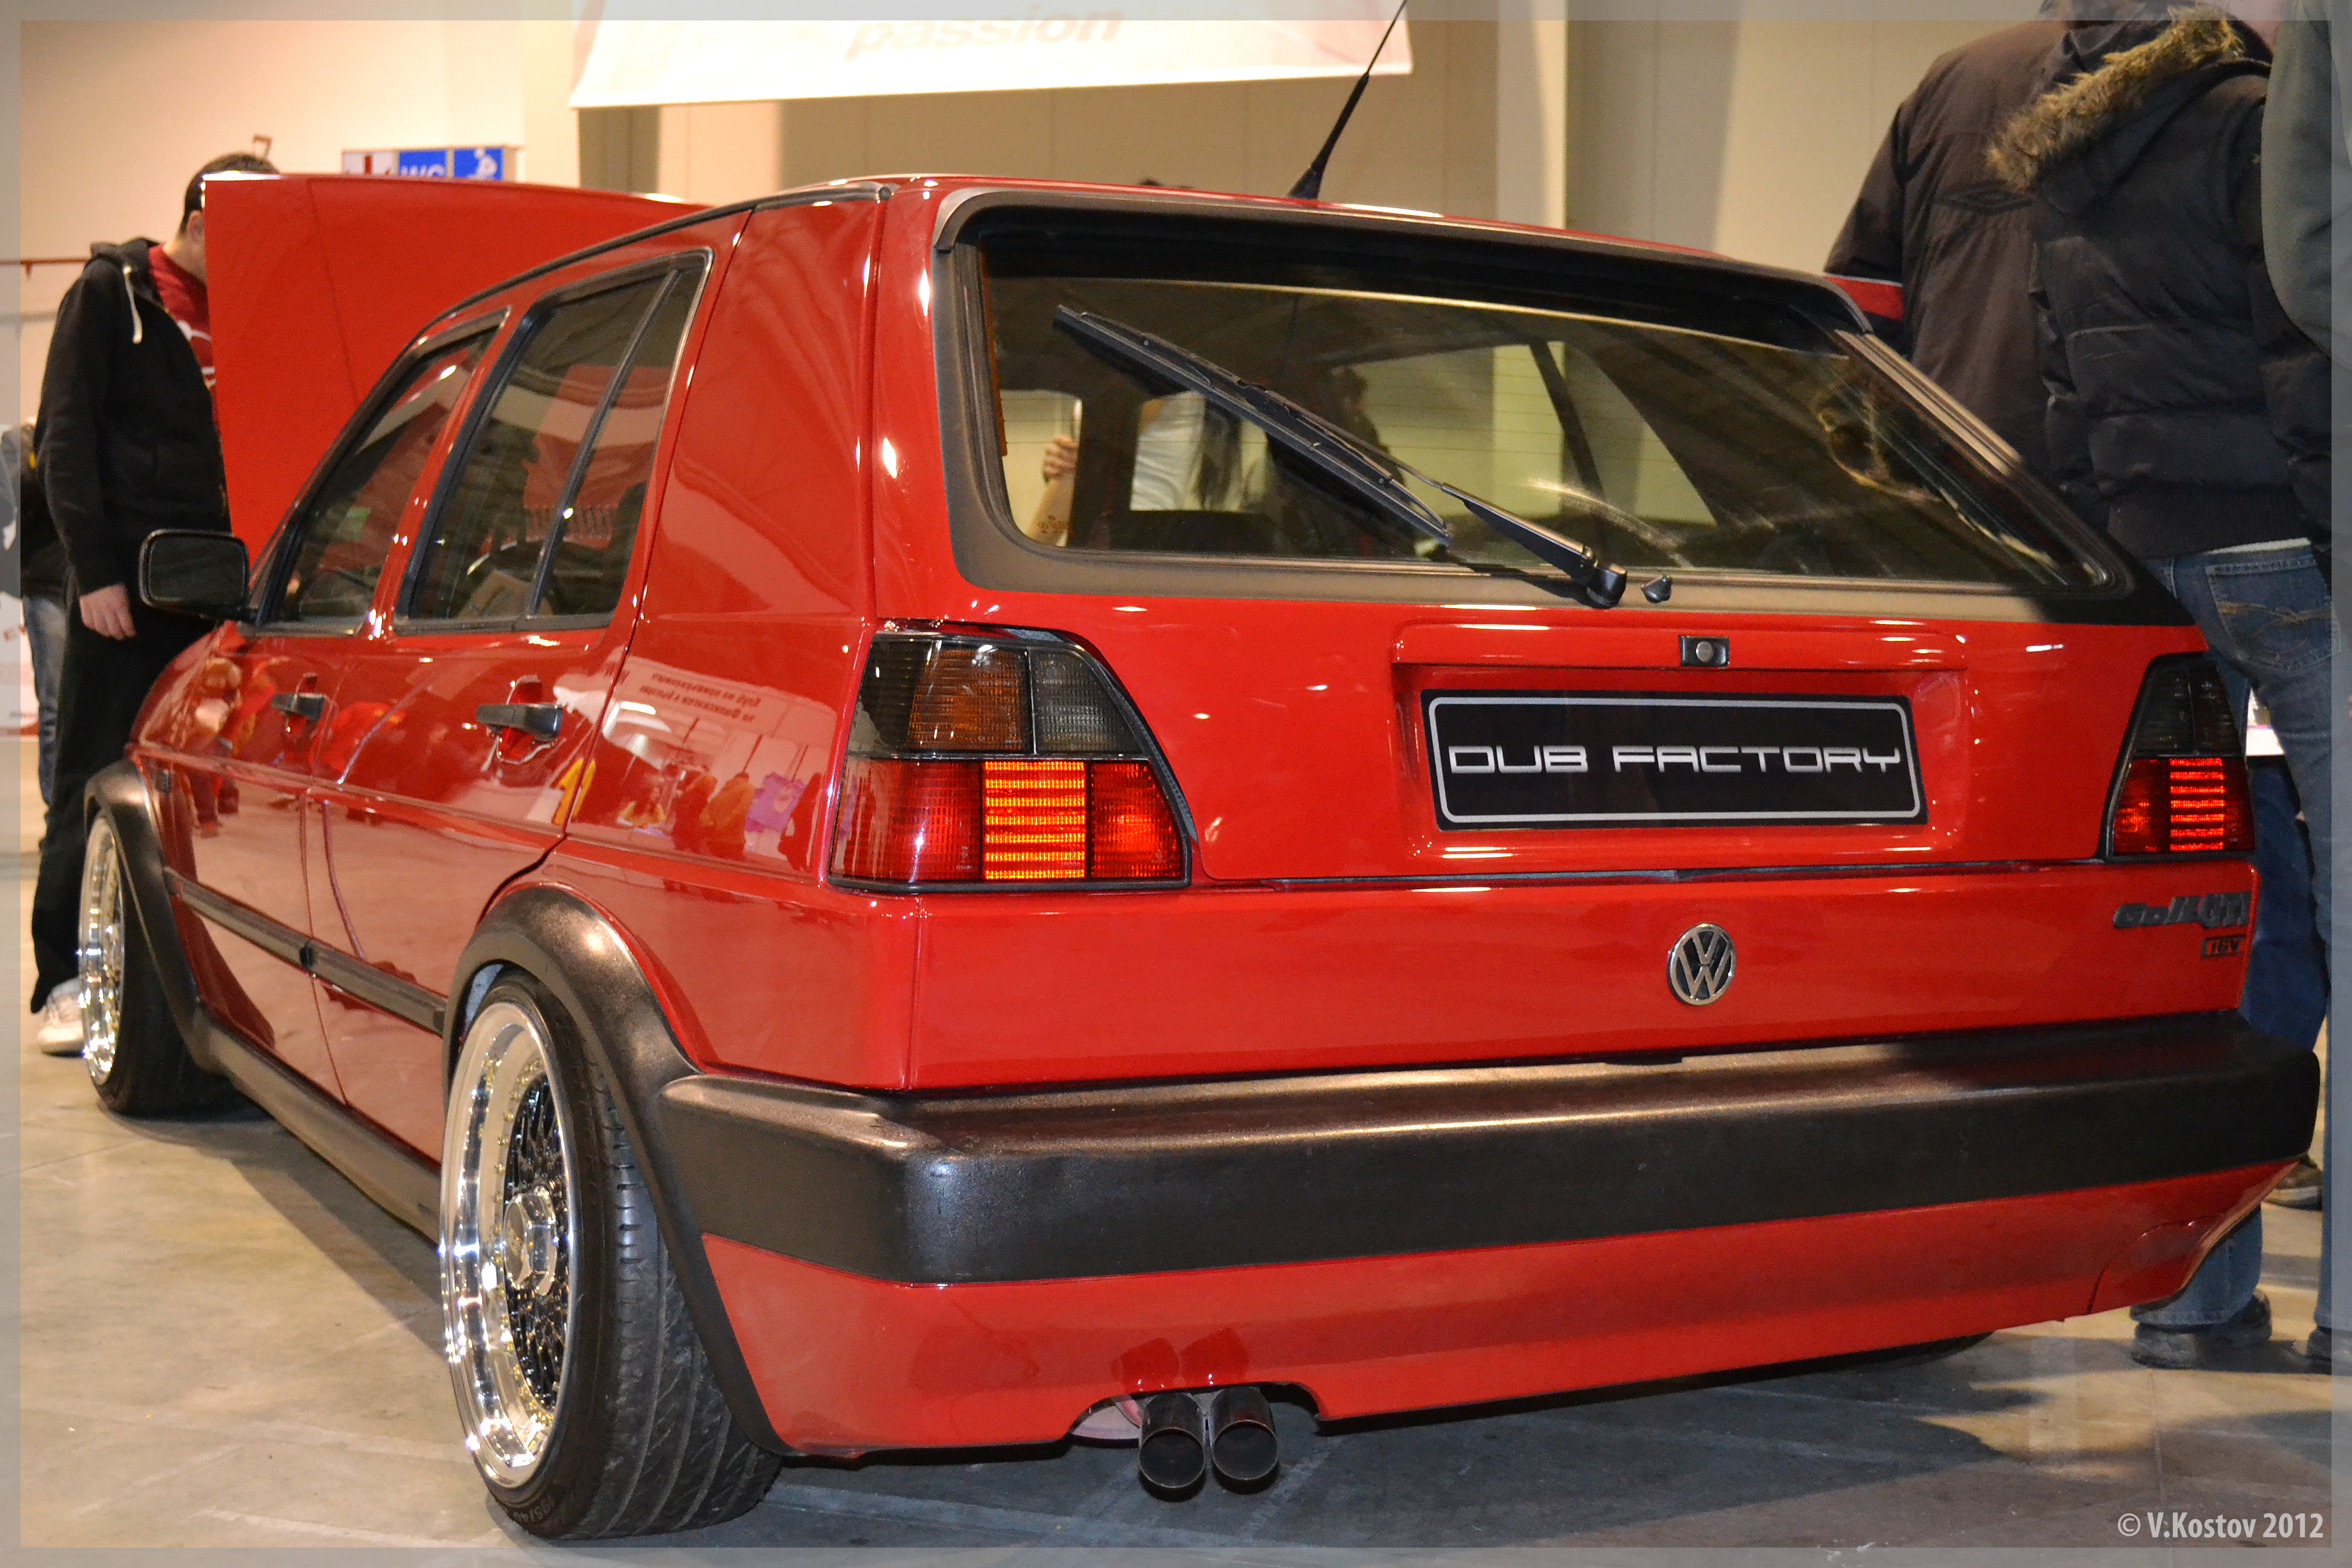 VW Golf III Vento Front 285253045 moreover Forge Motorsport Golf also Crap Cars I Like 2 1992 To 1998 Mk3 Golf Gti furthermore Volkswagen Golf Ii 3 Doors 1983 additionally Volkswagen Golf 4 Tuning. on golf mk2 wallpaper